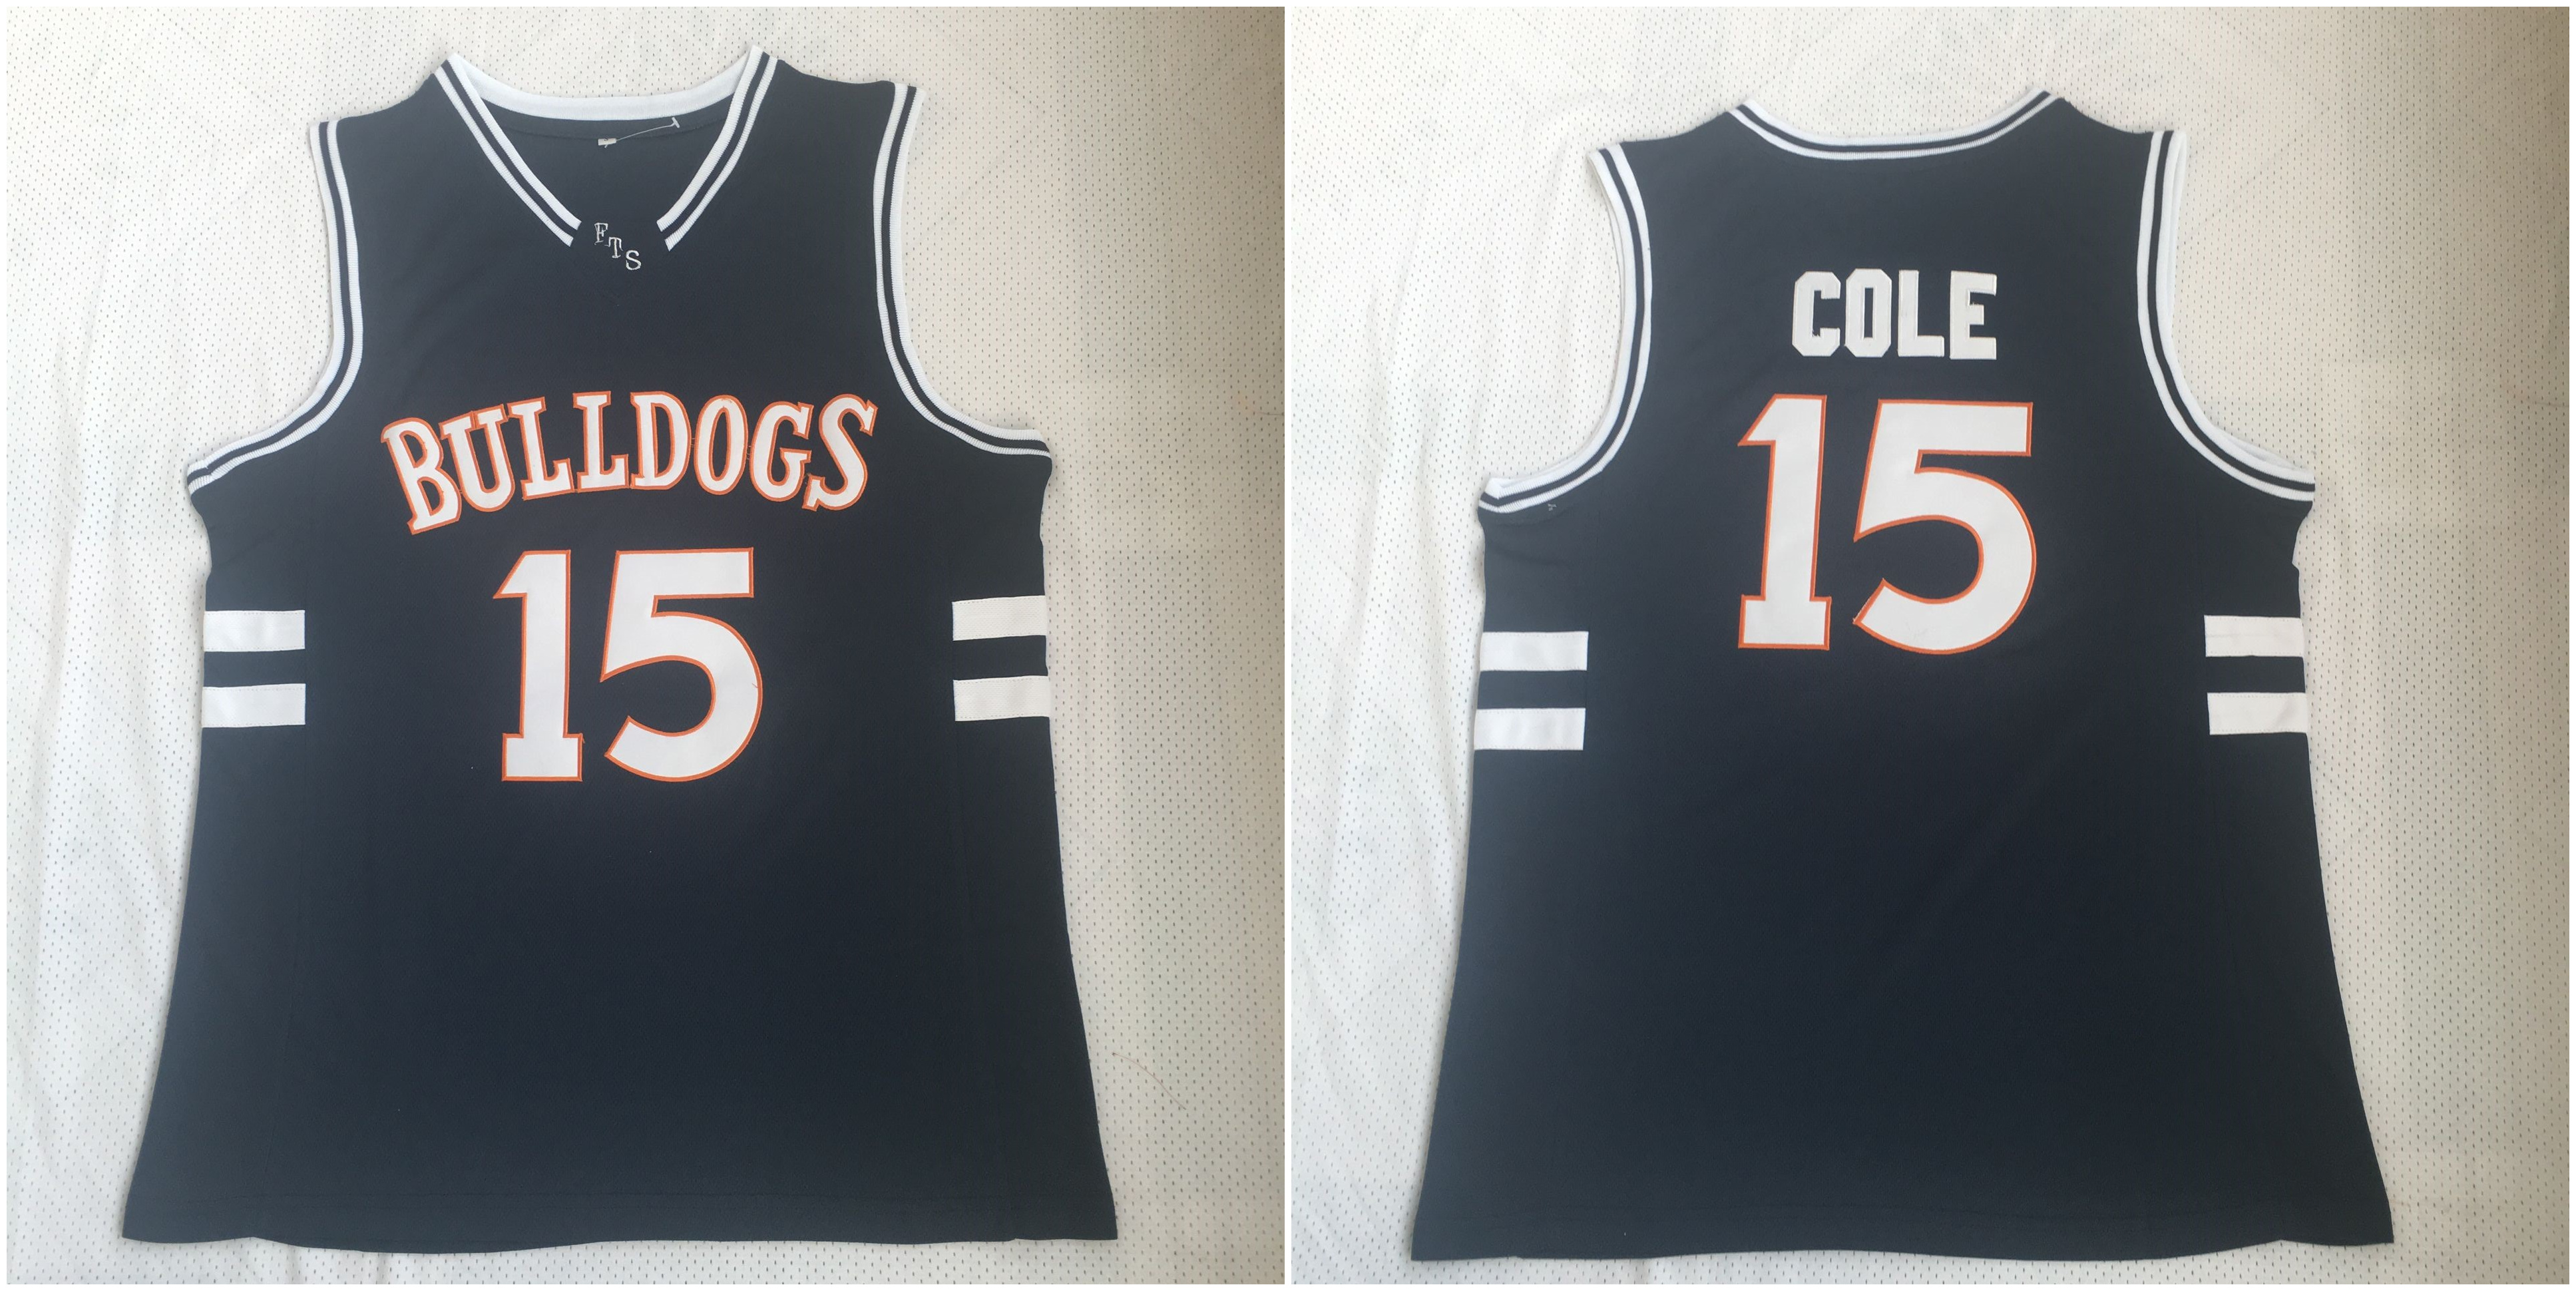 Bulldogs 15 J. Cole Navy Stitched Movie Basketball Jersey